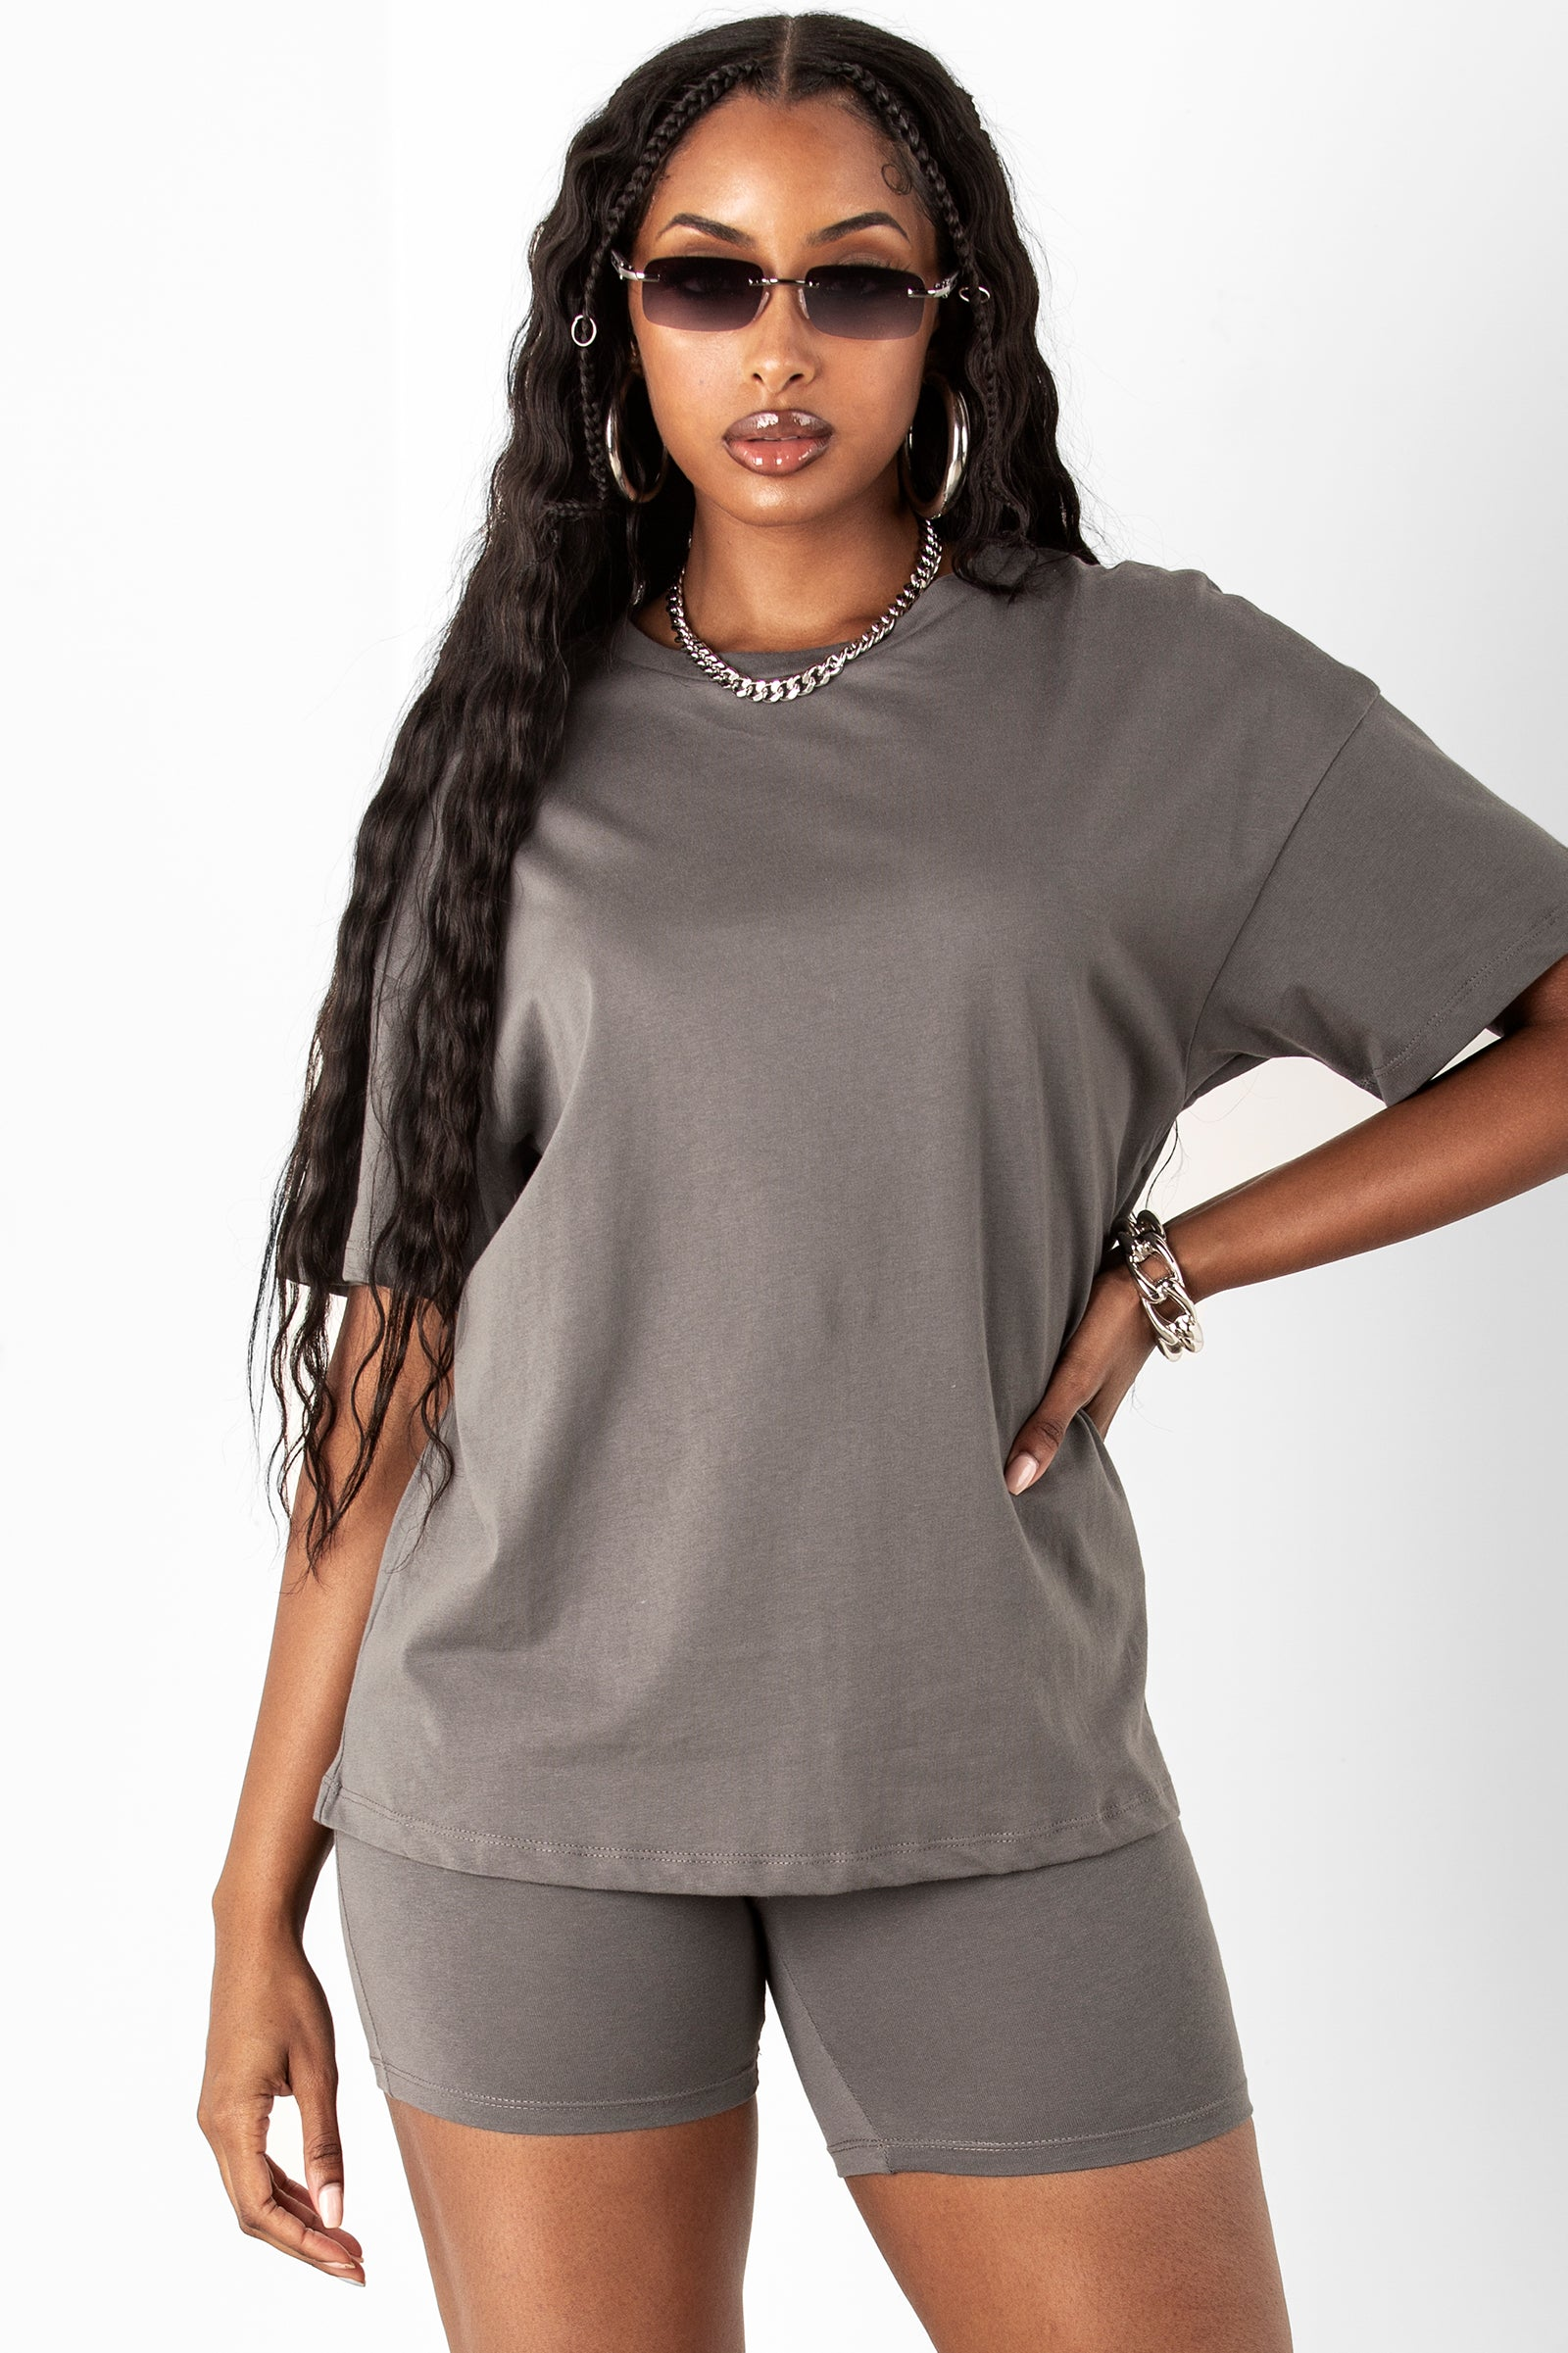 Charcoal Cotton Boyfriend Tee & Short Set